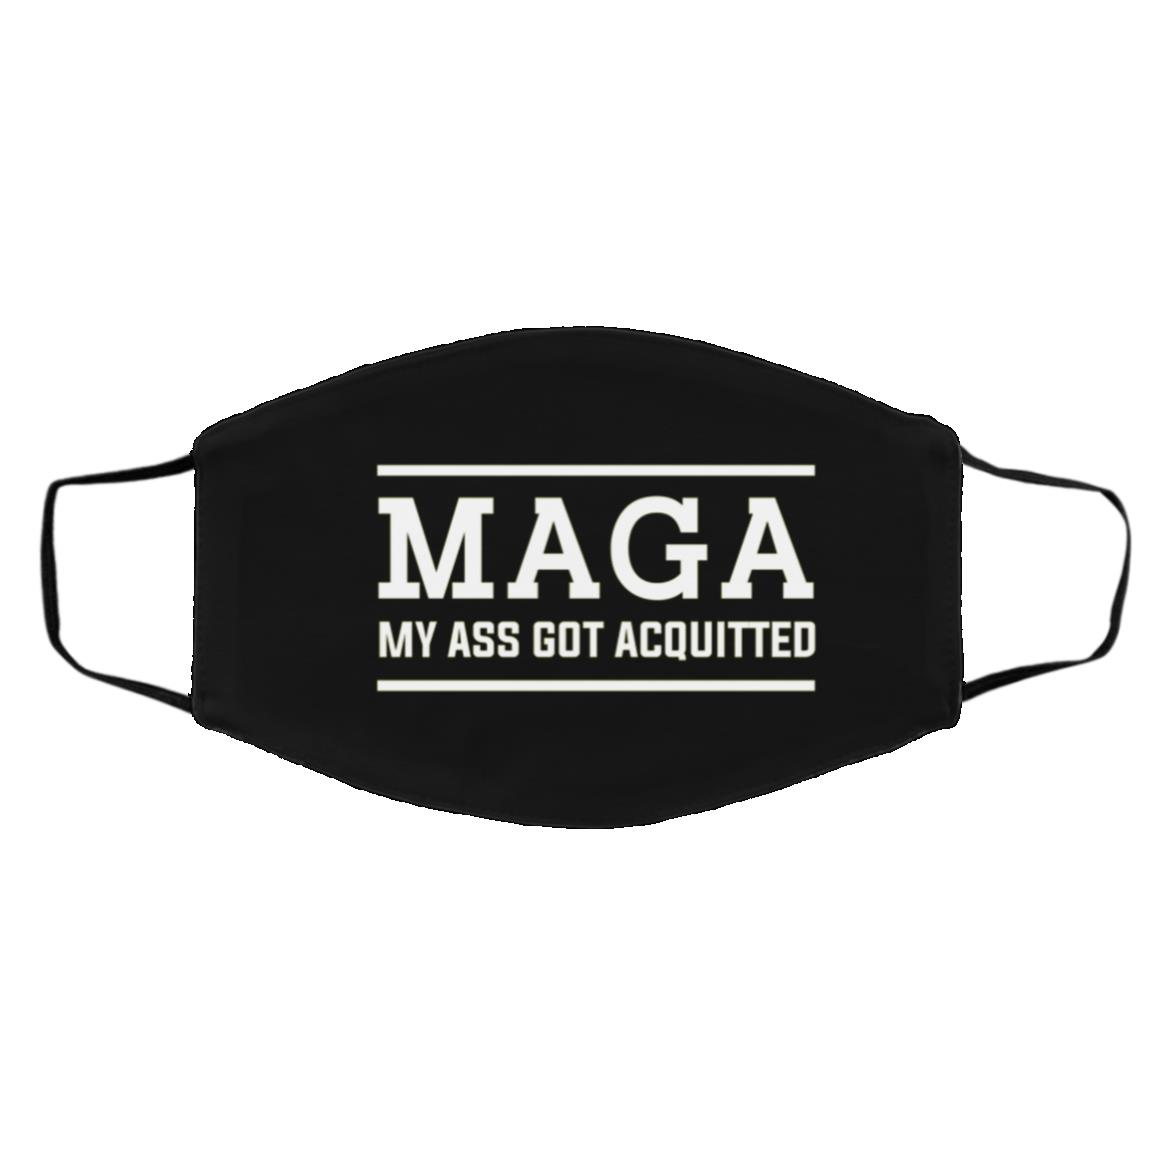 Maga My Ass Got Acquitted, Black, Cloth Face Cover – Medium/Large